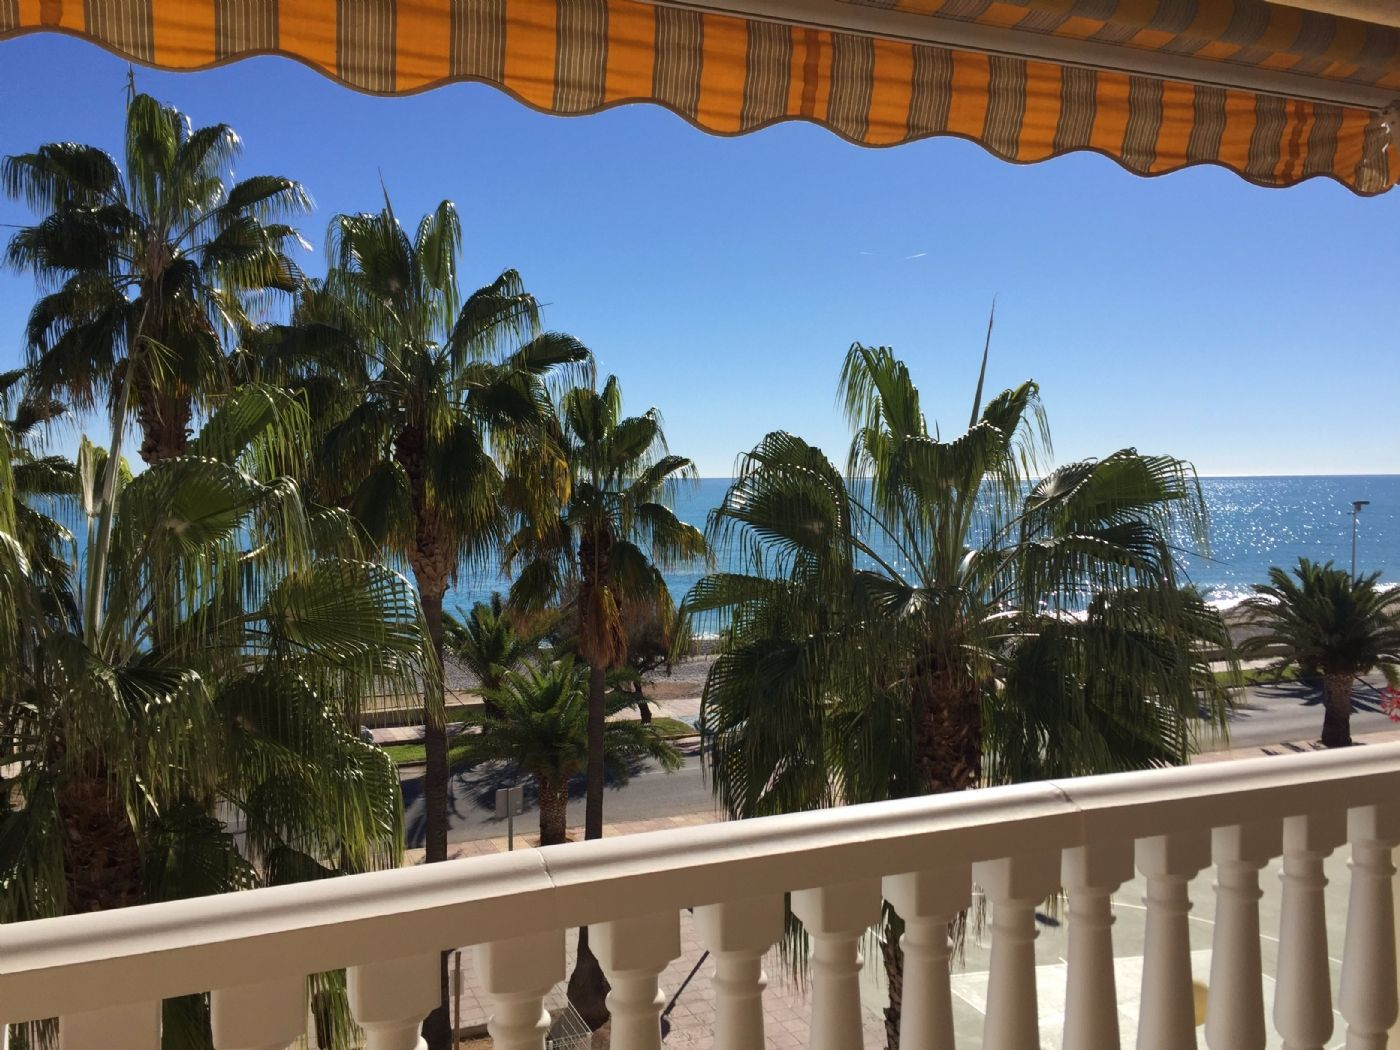 Location Appartement à Calle torrecaiguda, 7. 20 meters from the beach ¡¡¡¡¡